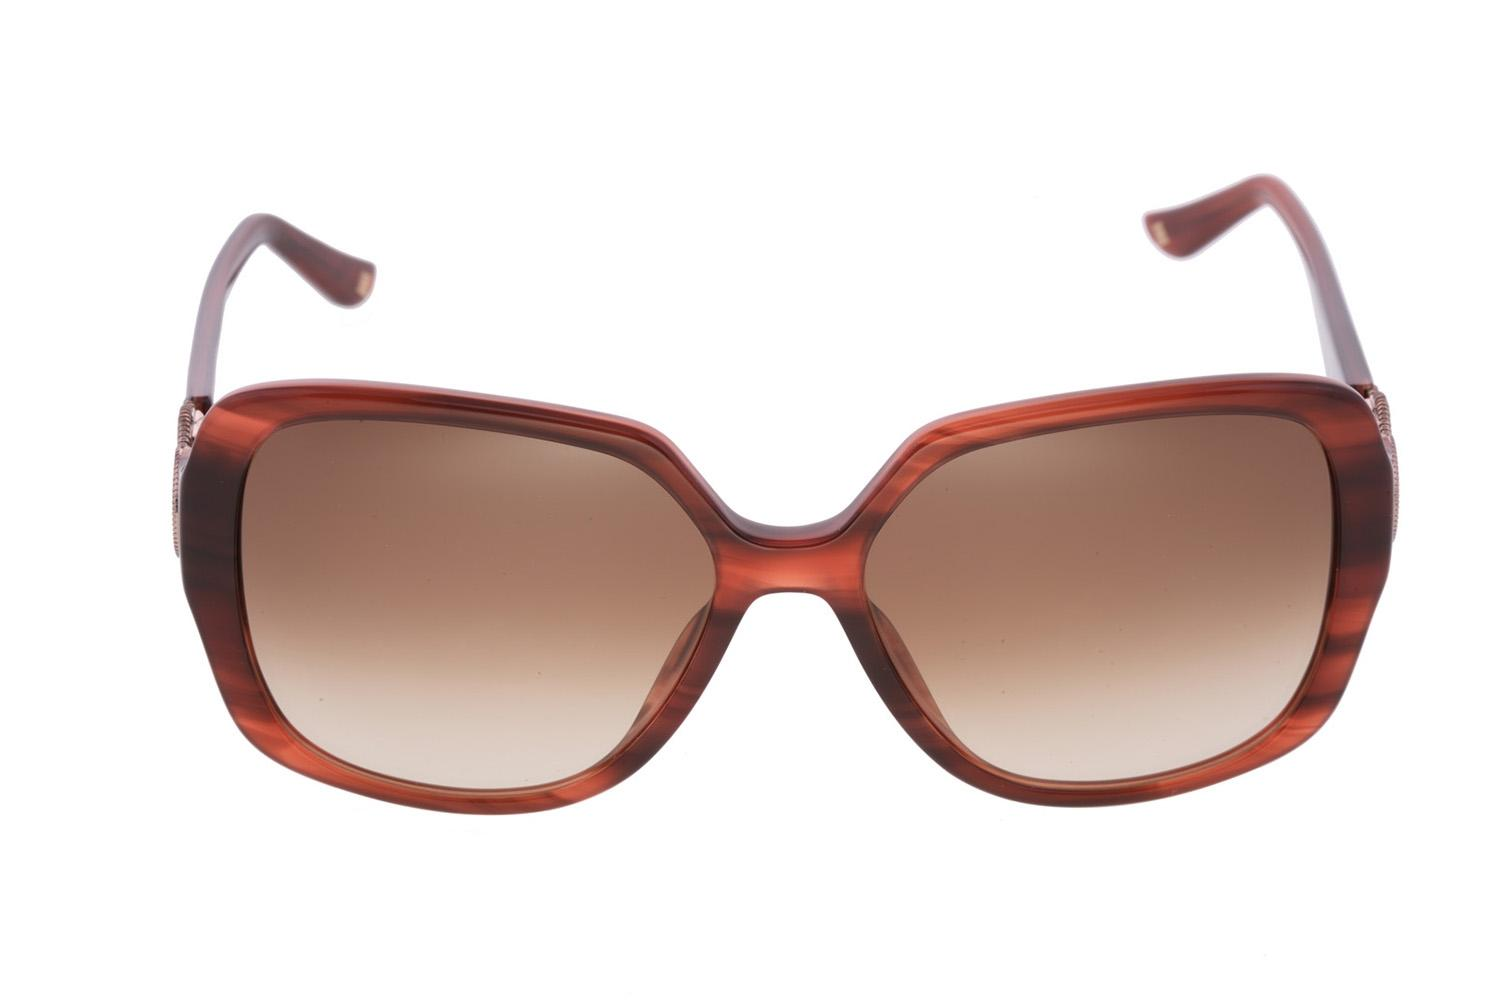 designer sunglasses women ucfr  Escada Brand New ESCADA Women Brown Square Oversized High-Fashion Designer  Sunglasses Italy